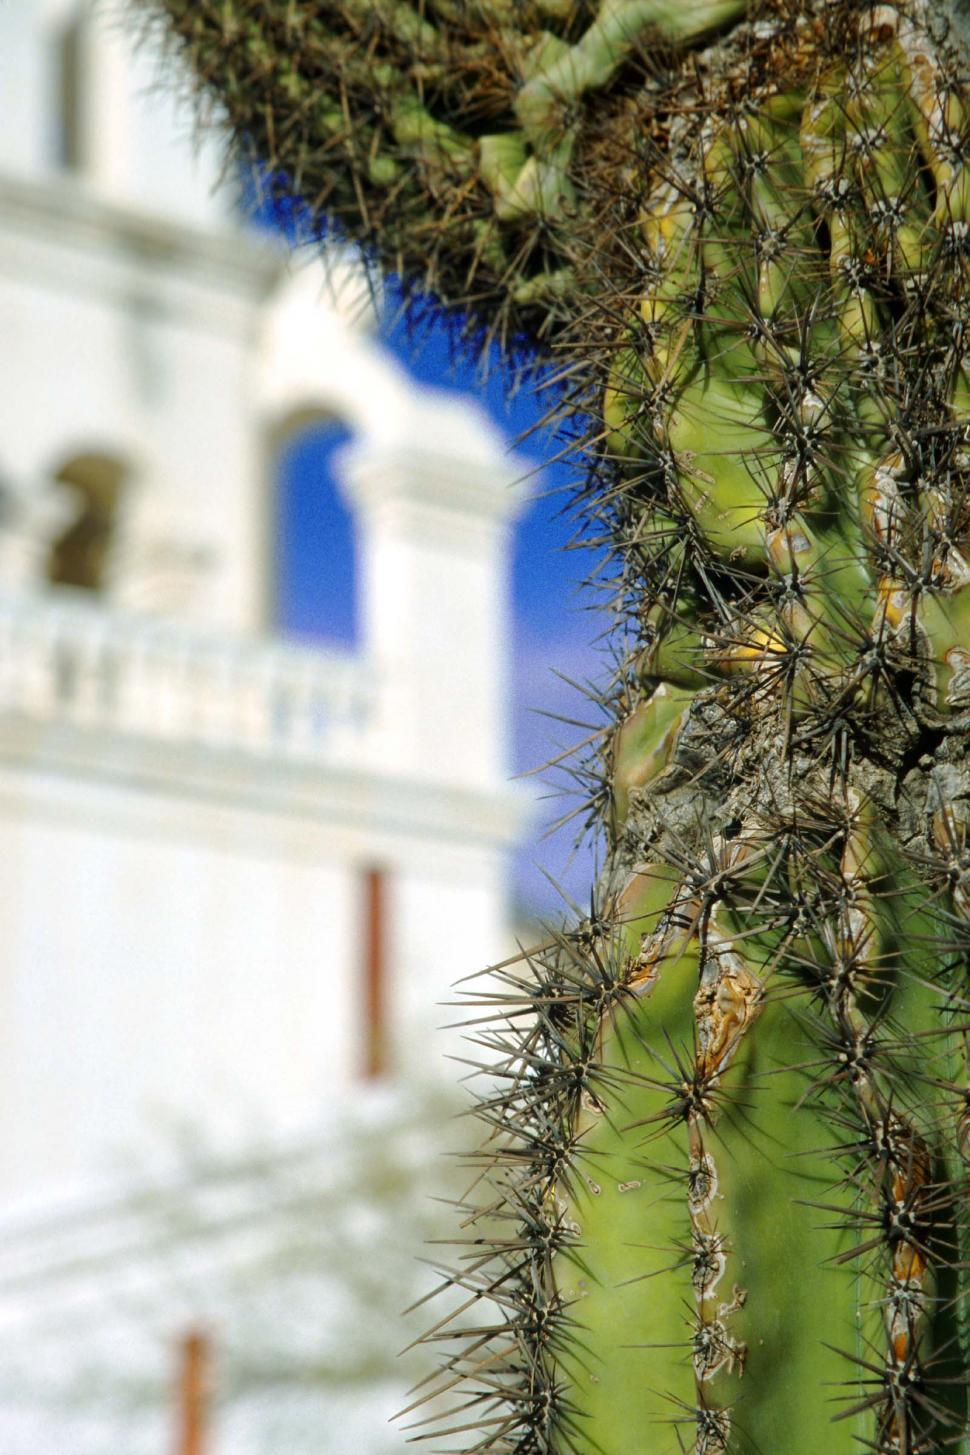 Download Free Stock HD Photo of Cactus and Mission San Xavier del Bac Online